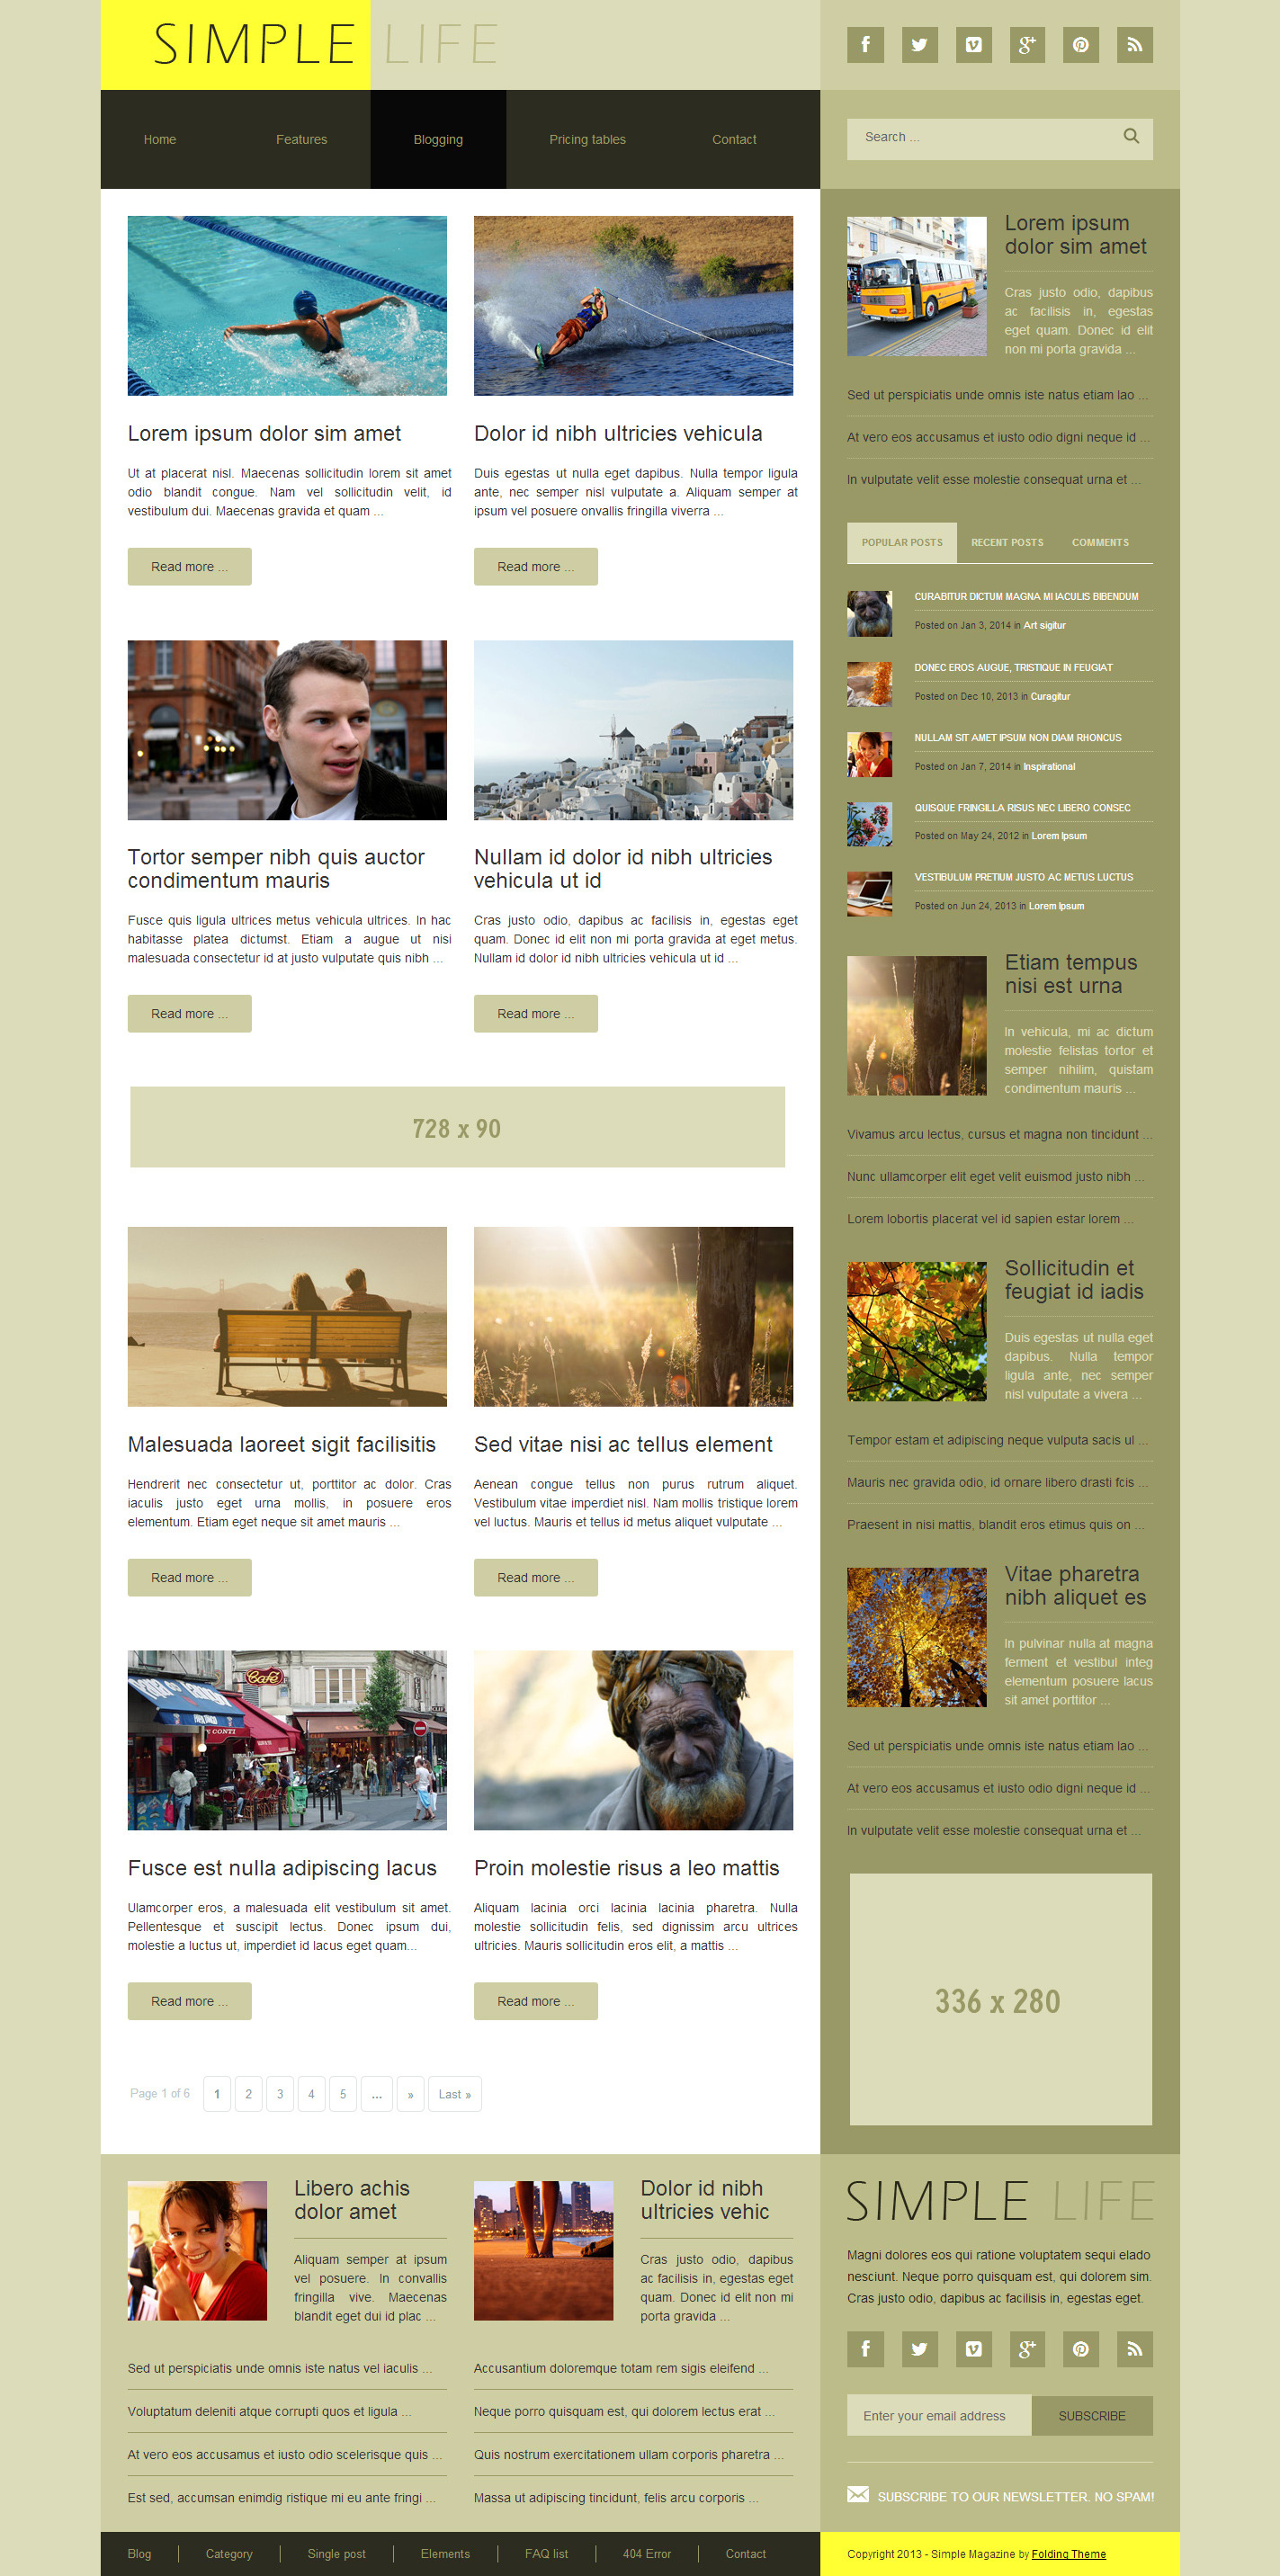 Simple life blog news magazine html template by for Minimalist living blog